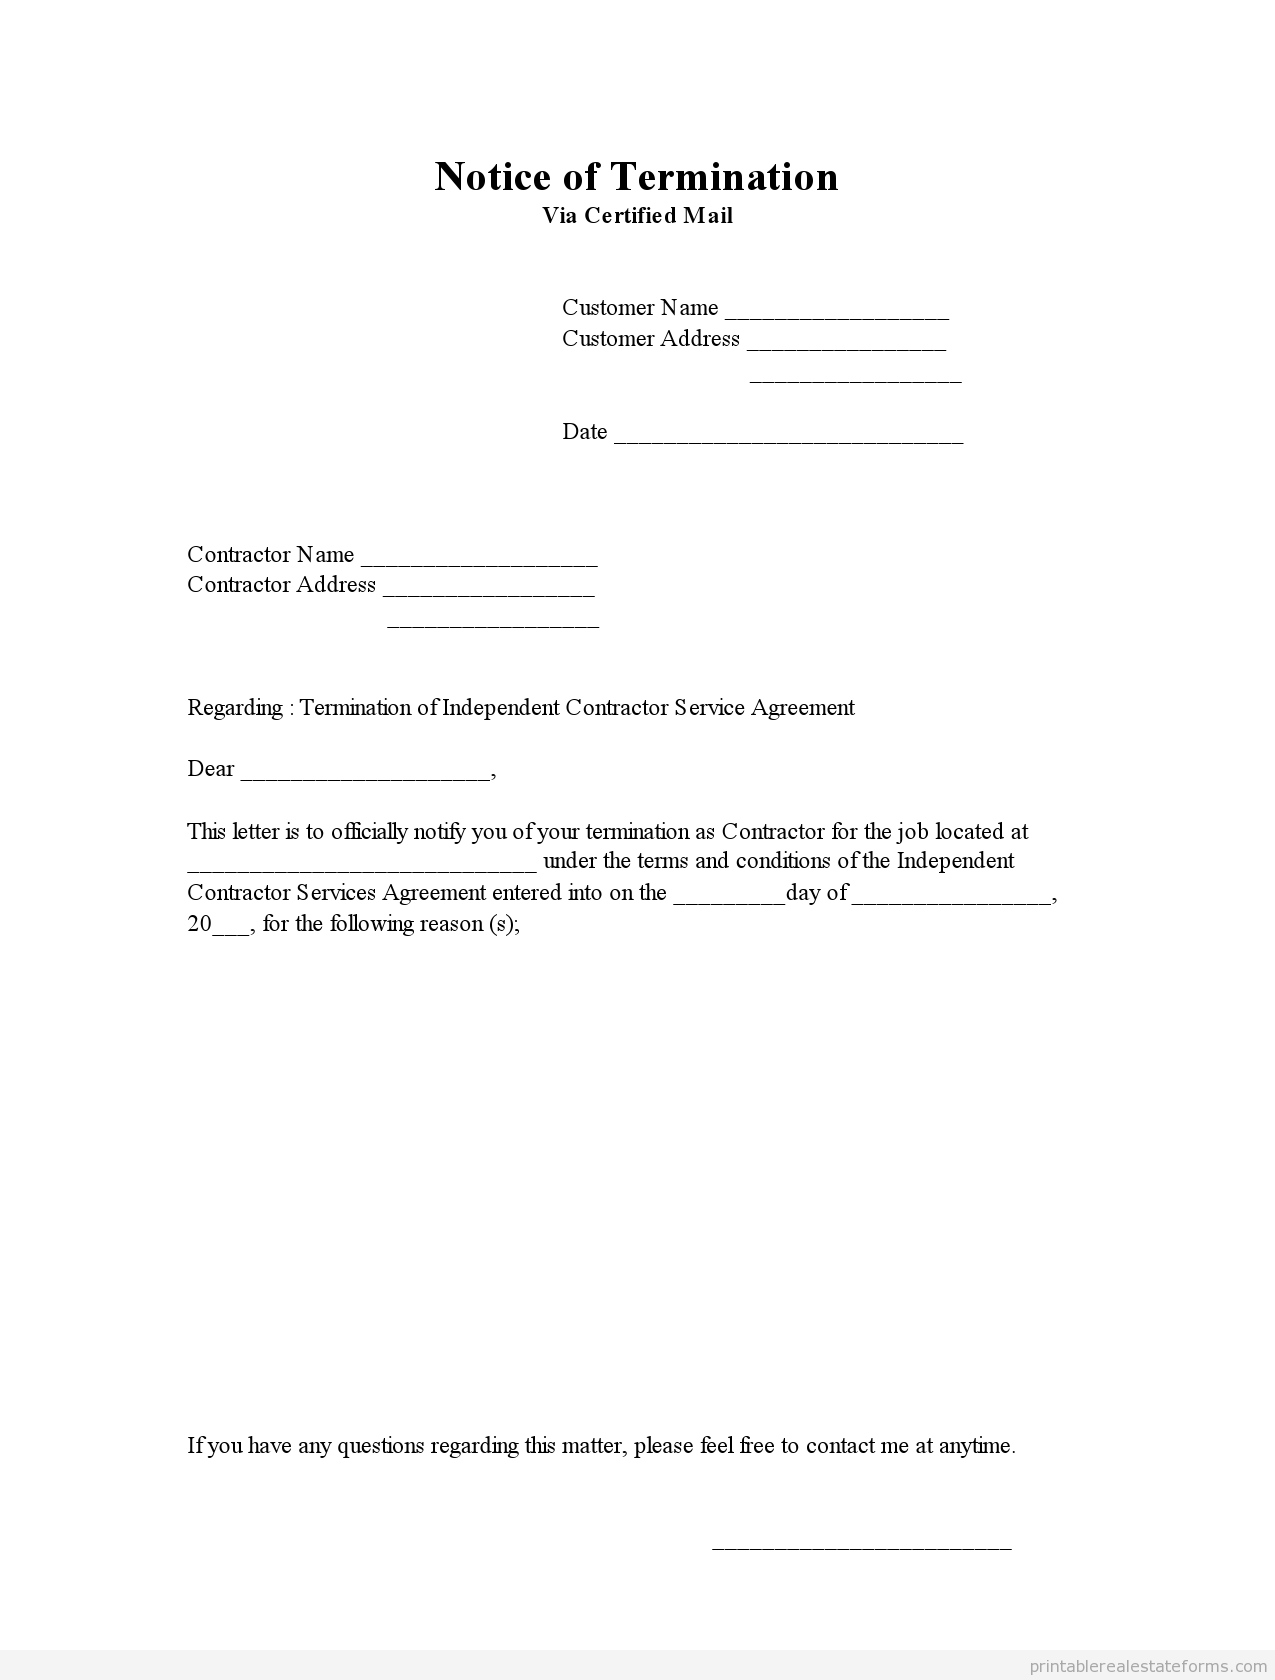 Printable Notice Of Termination Template 2015 Sample Forms 2015